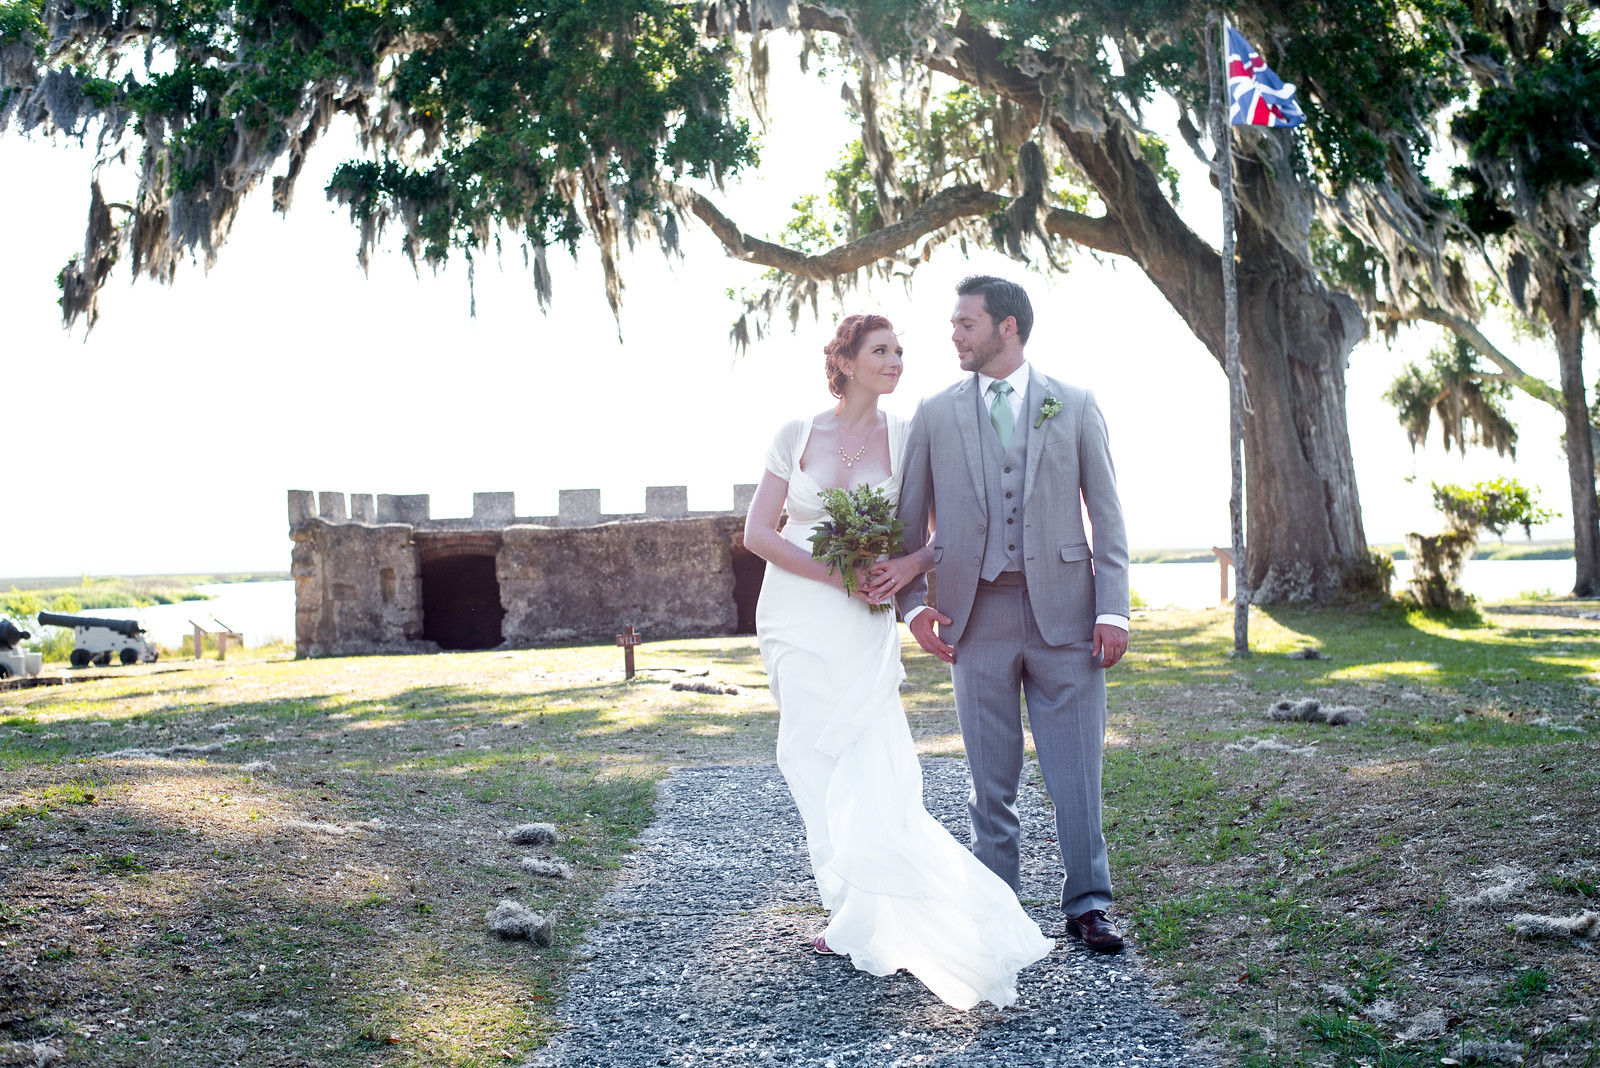 GENNY'S HISTORIC FORT WEDDING